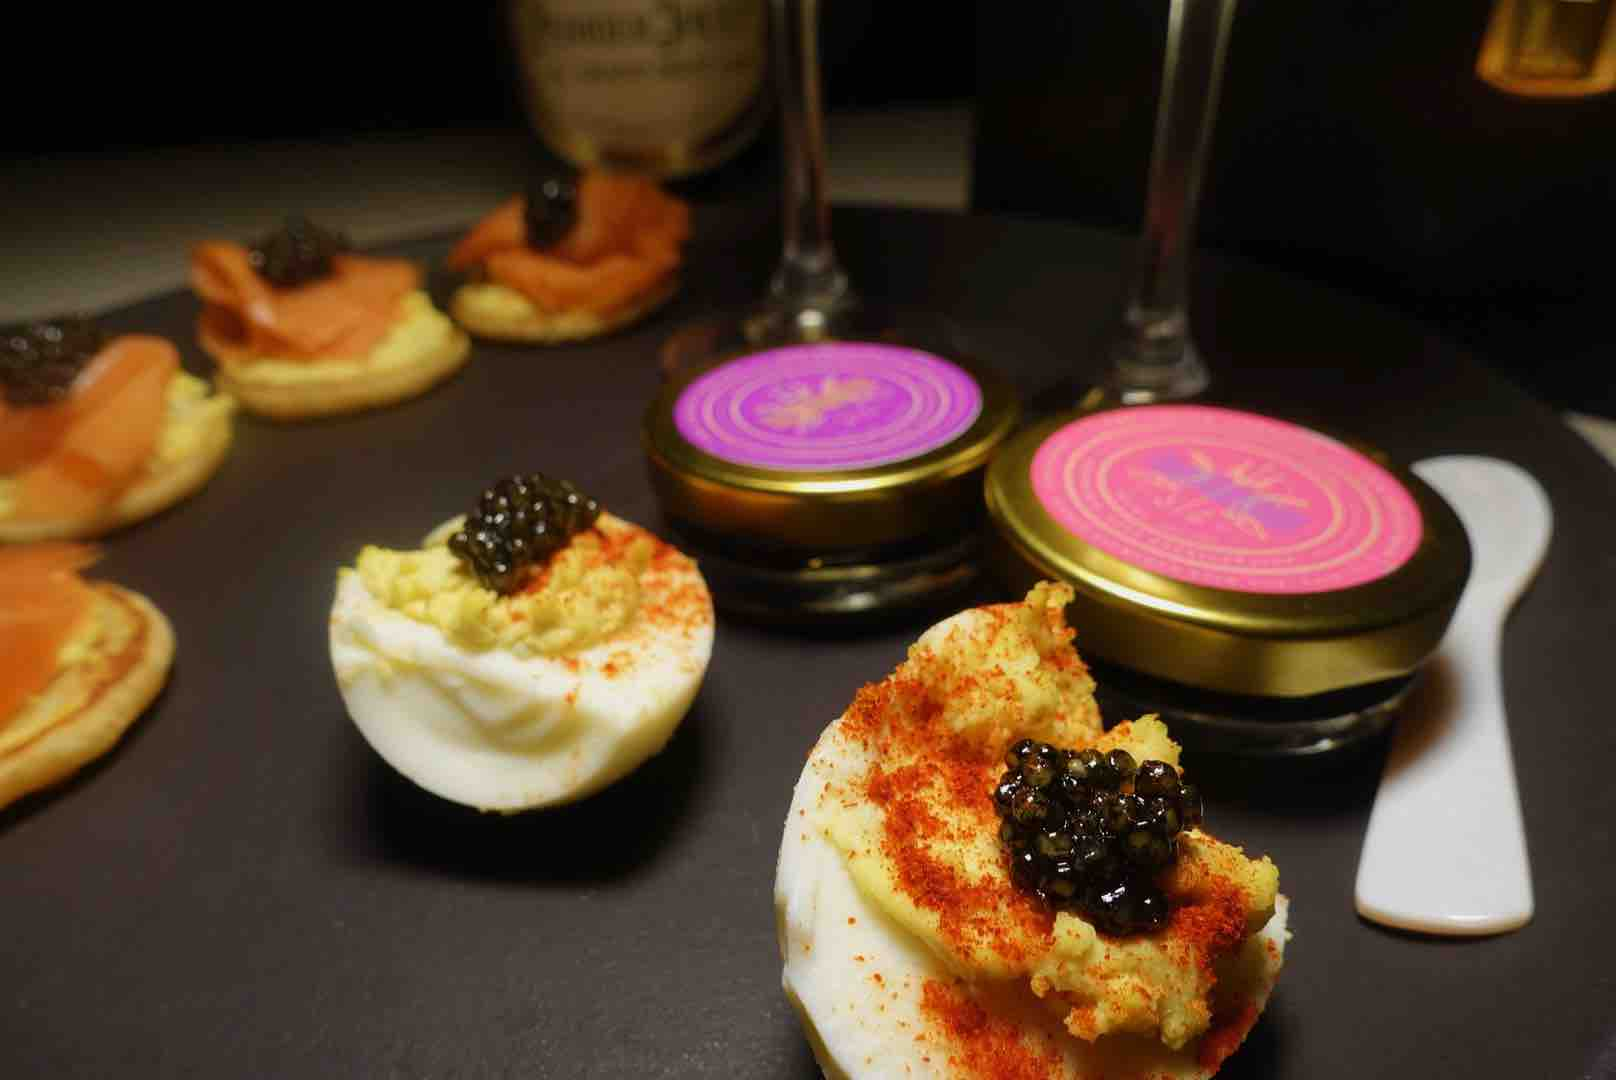 The Caviar Co. Top Things To Do This Valentine's Day At Home To Make It Romantic & Memorable